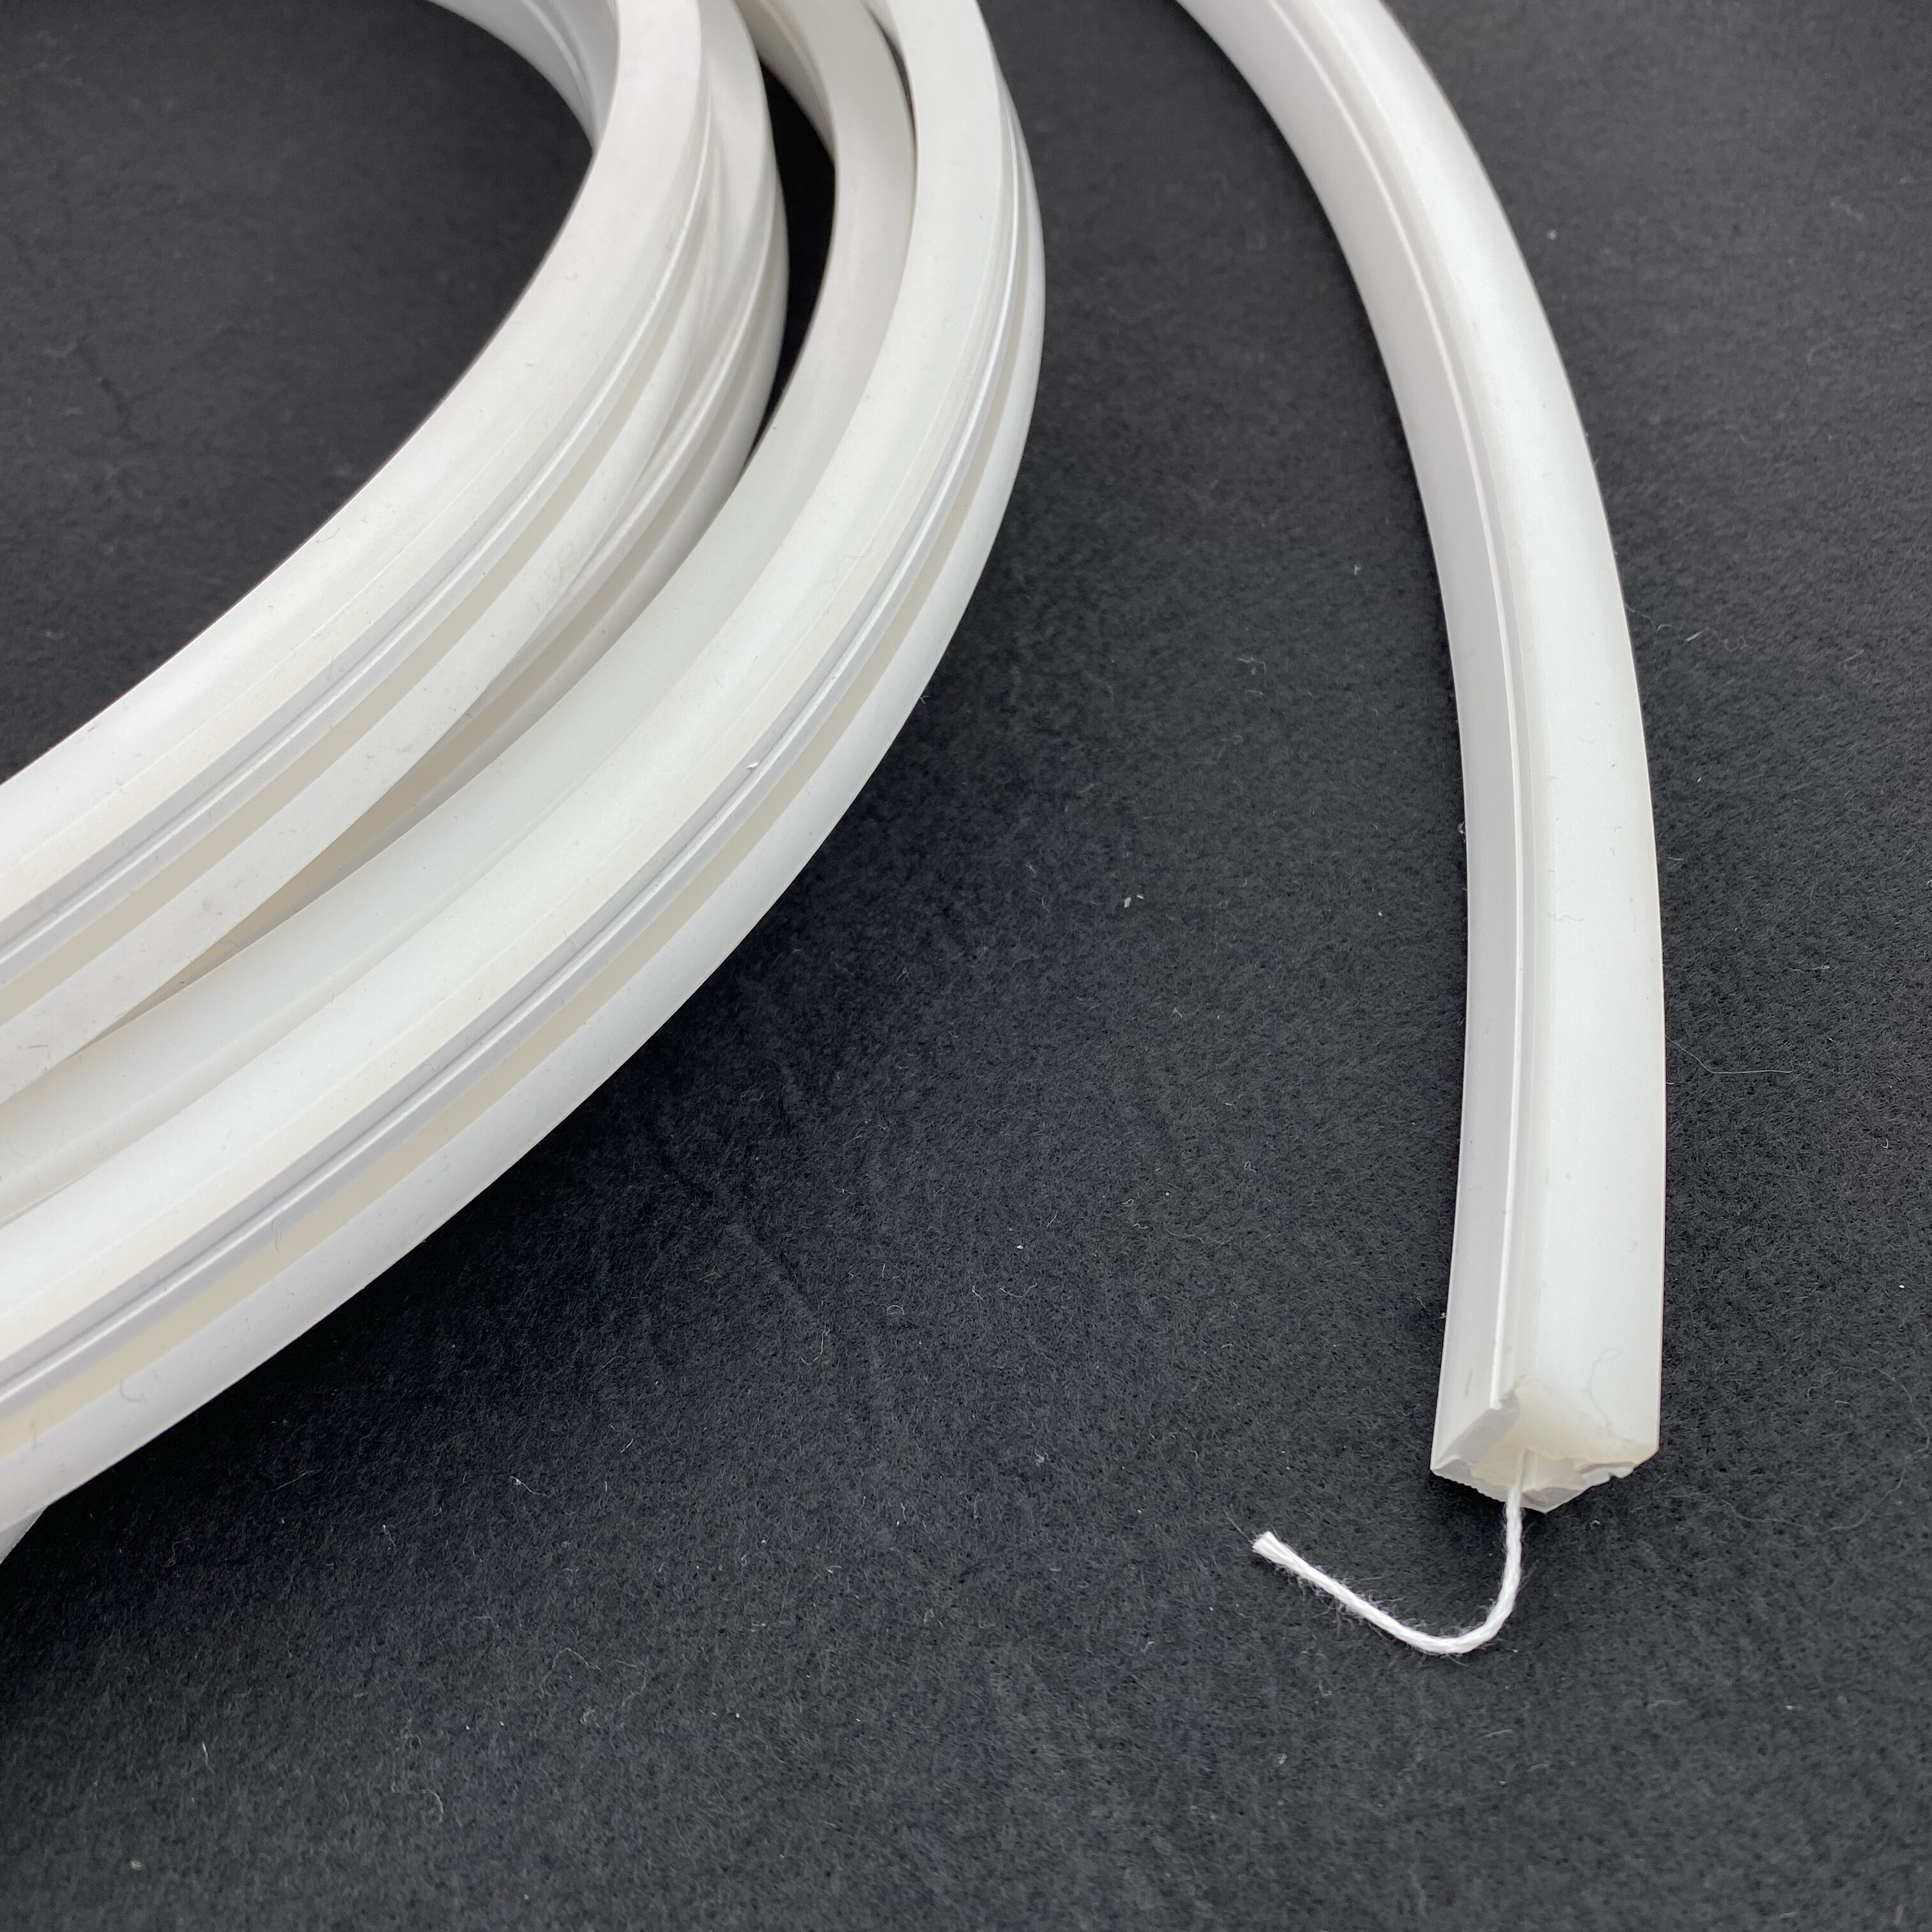 Size: 10mm*18mm,silicon Frosted Neon Tube,side View,used For PCBWidth:10mm;180° Beamangle